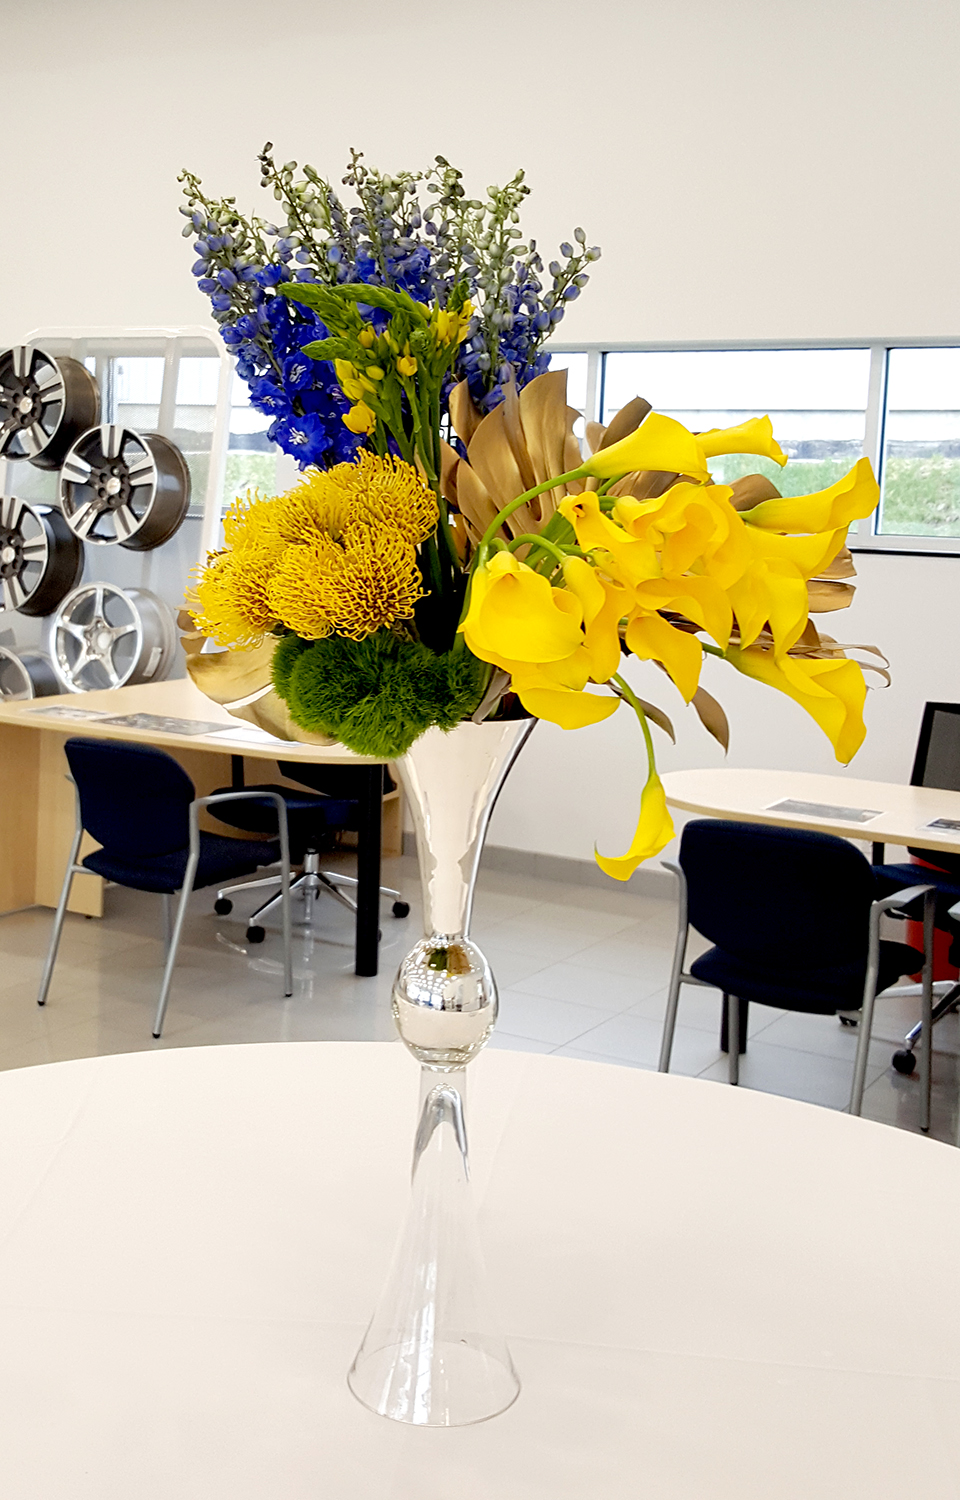 Yellow and purple flower arrangements in an office break room